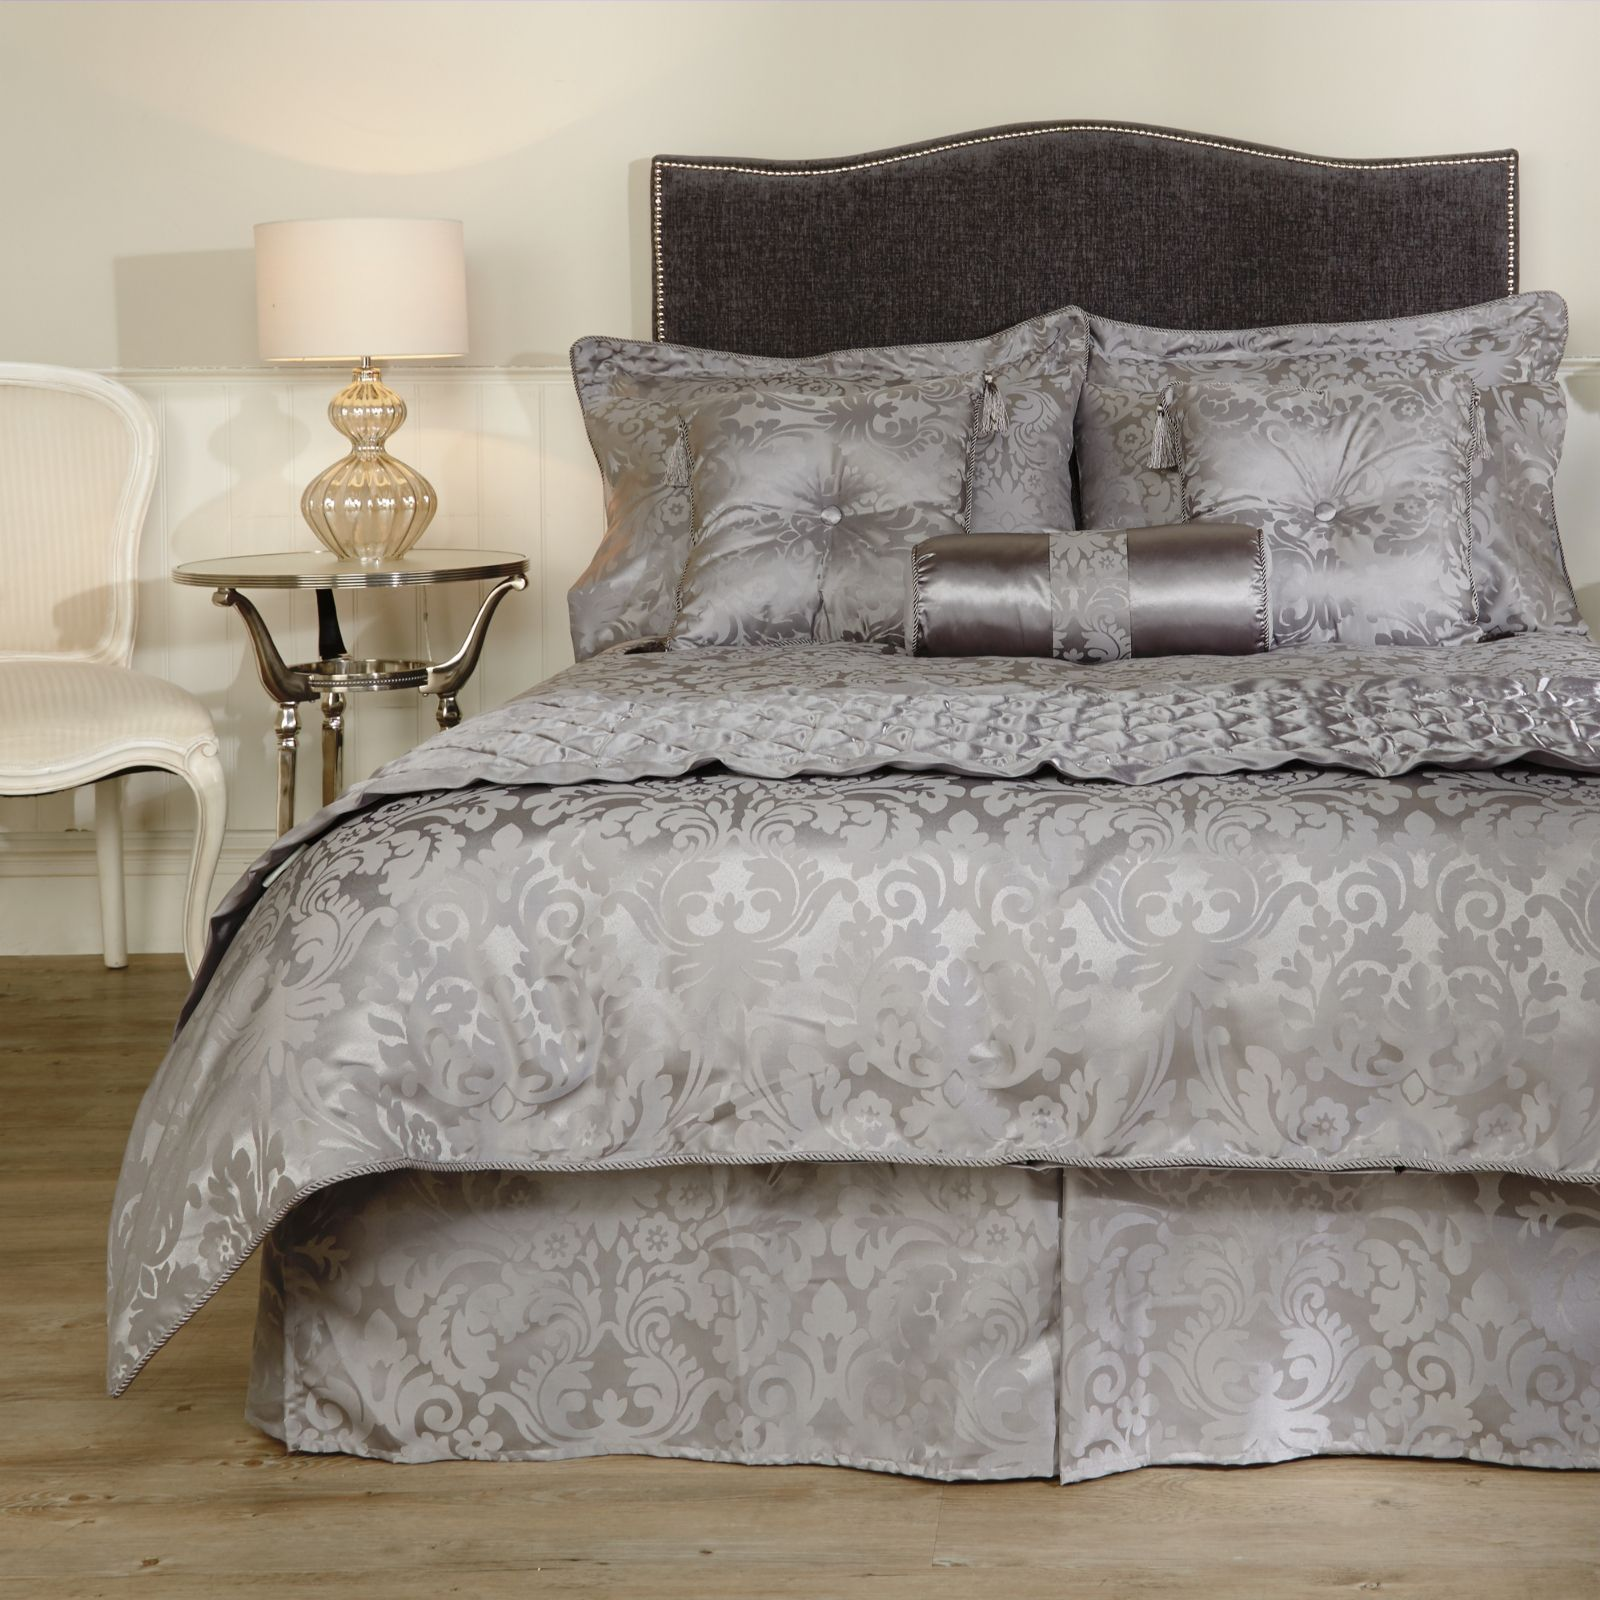 Mayfair Manor Damask Jacquard 10 Piece Bedding Collection - Page 1 - QVC UK